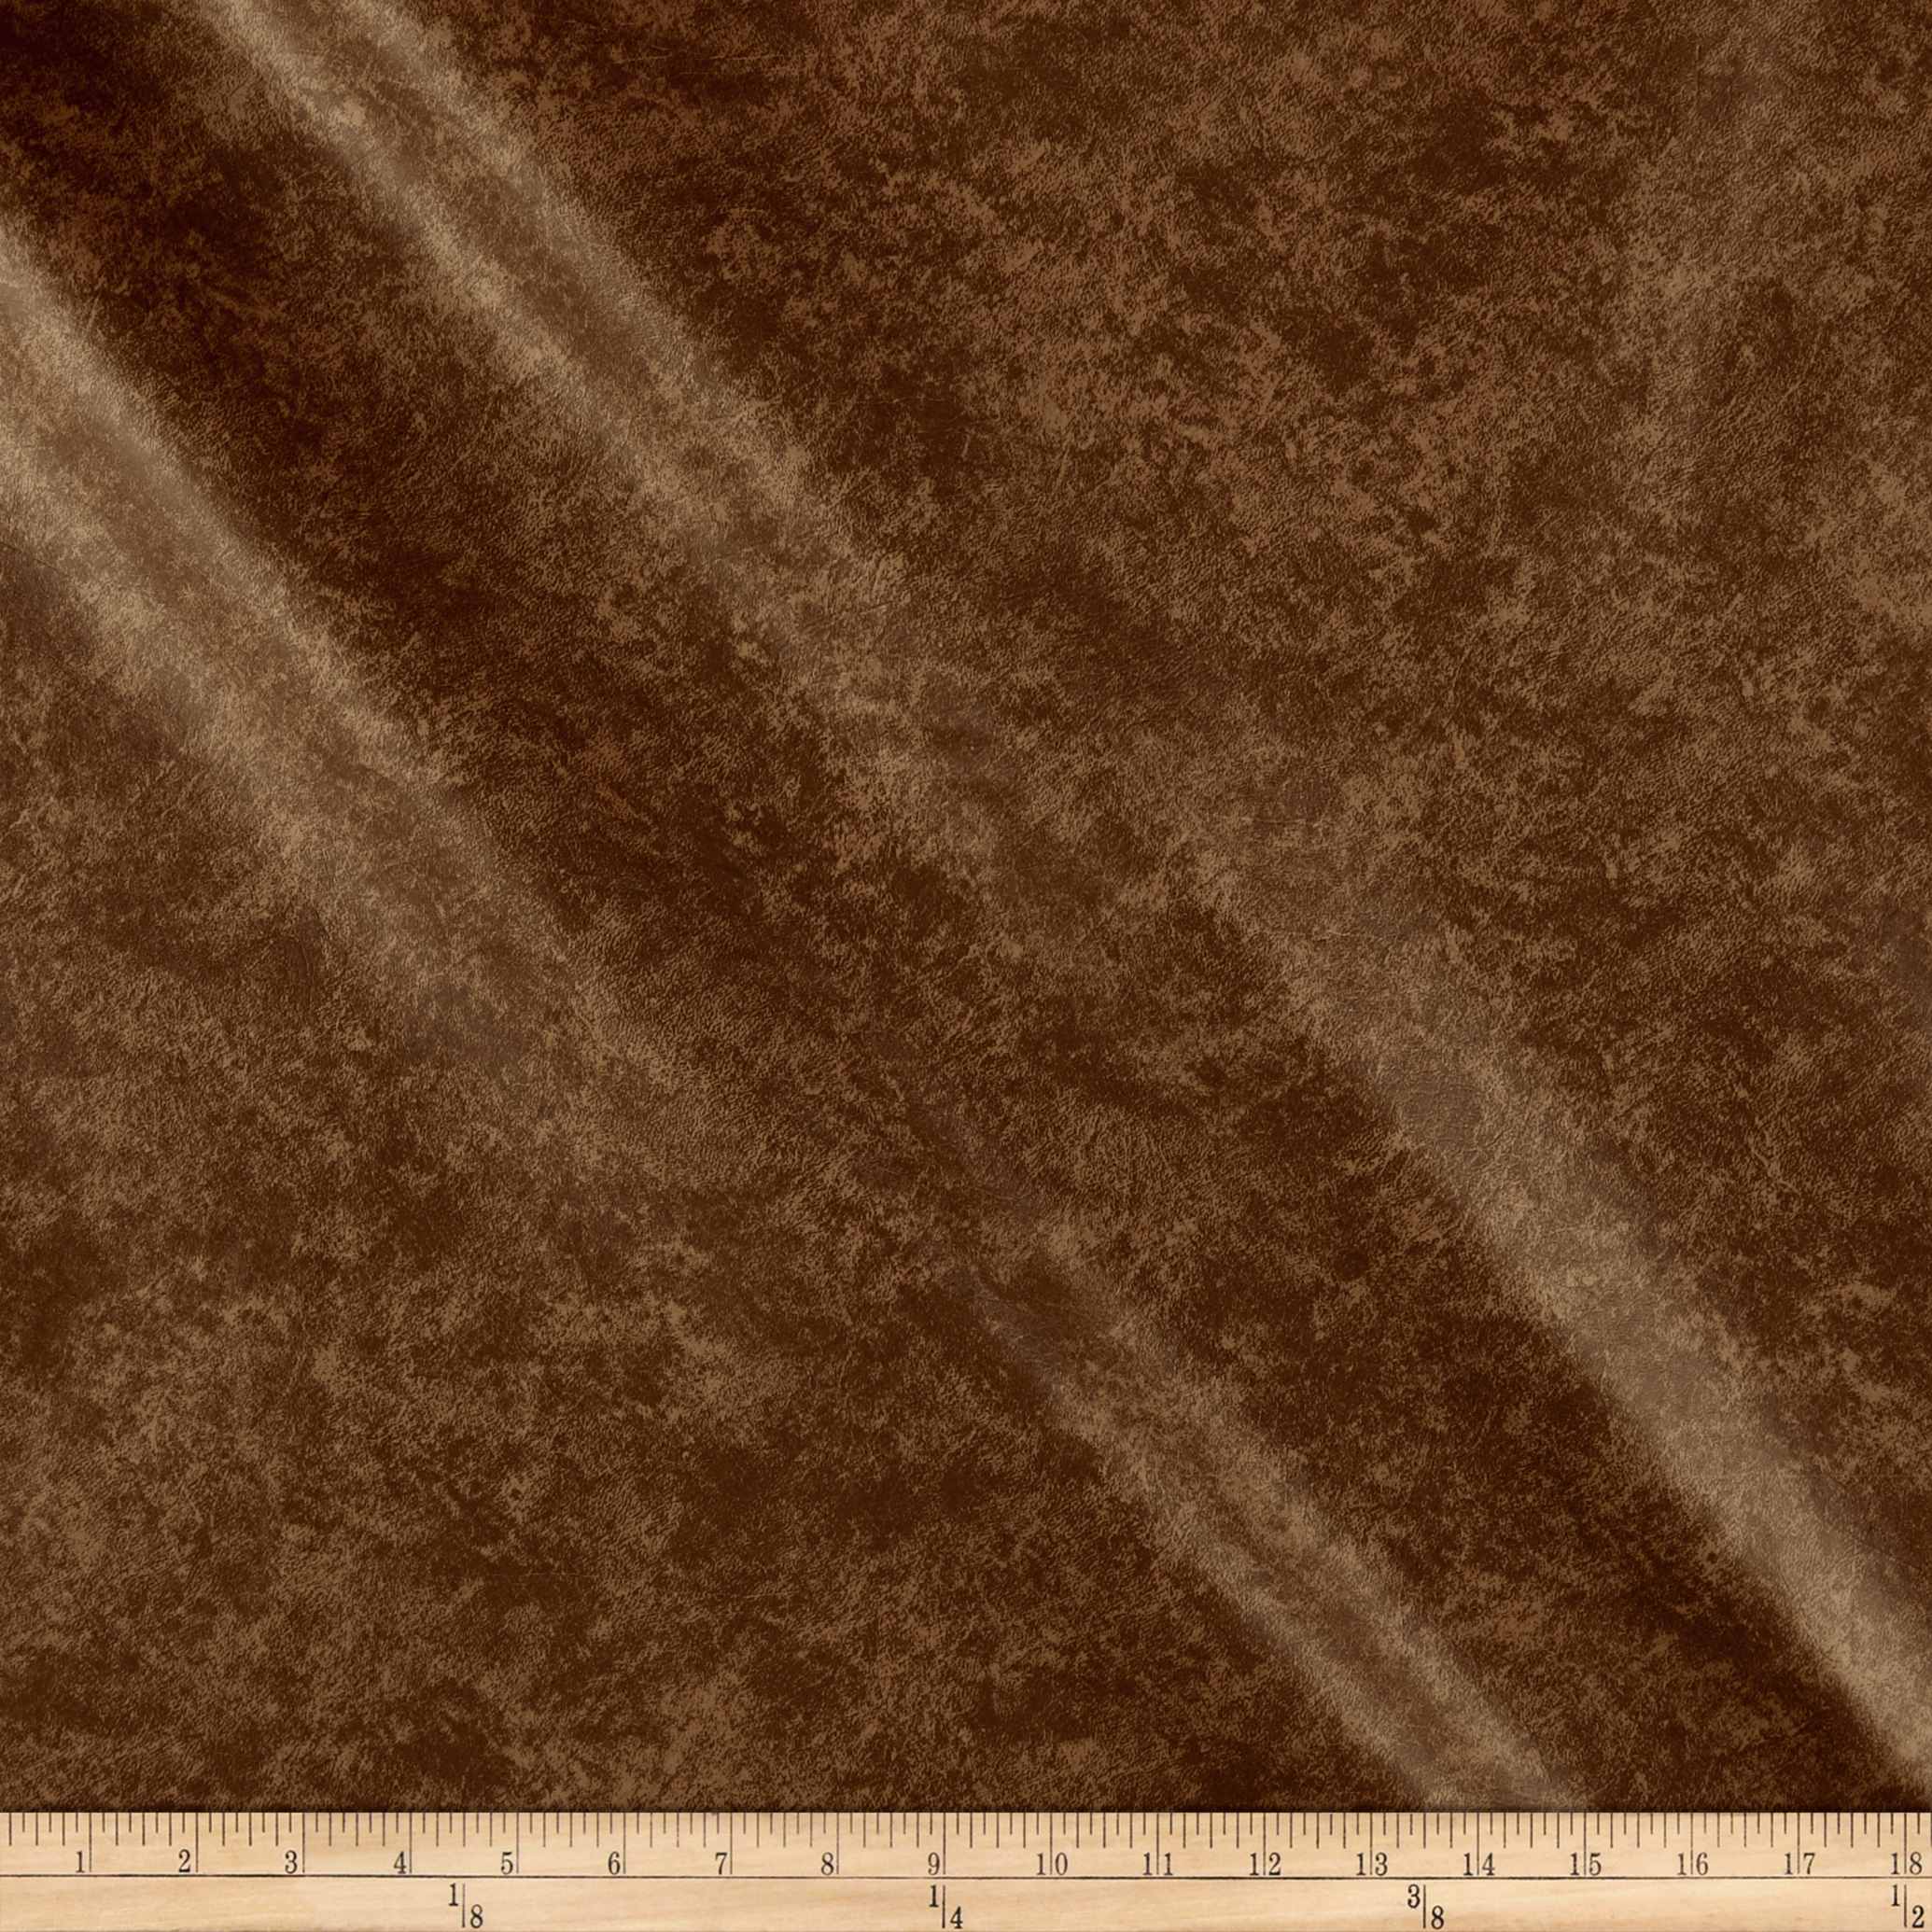 Faux Leather Buffalo Camel Print Fabric by Plastex in USA